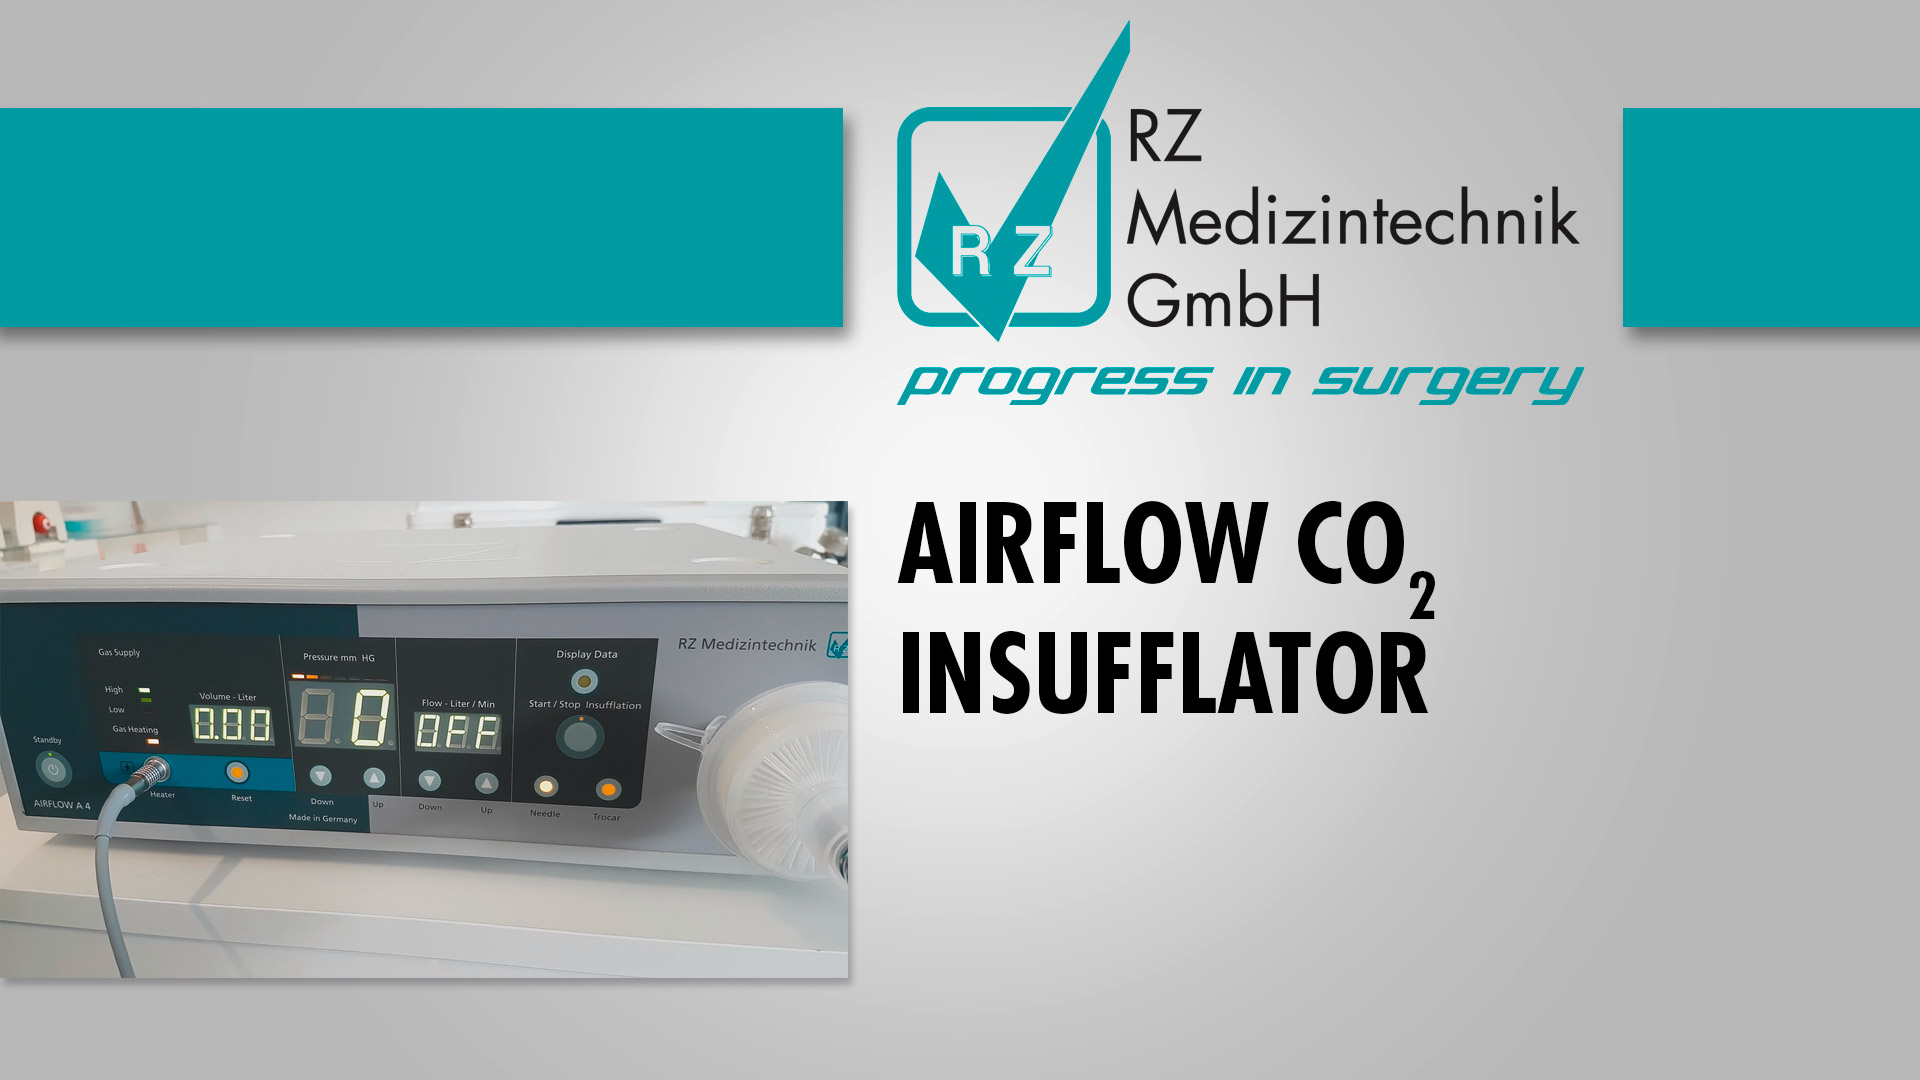 Airflow CO2 Insufflator